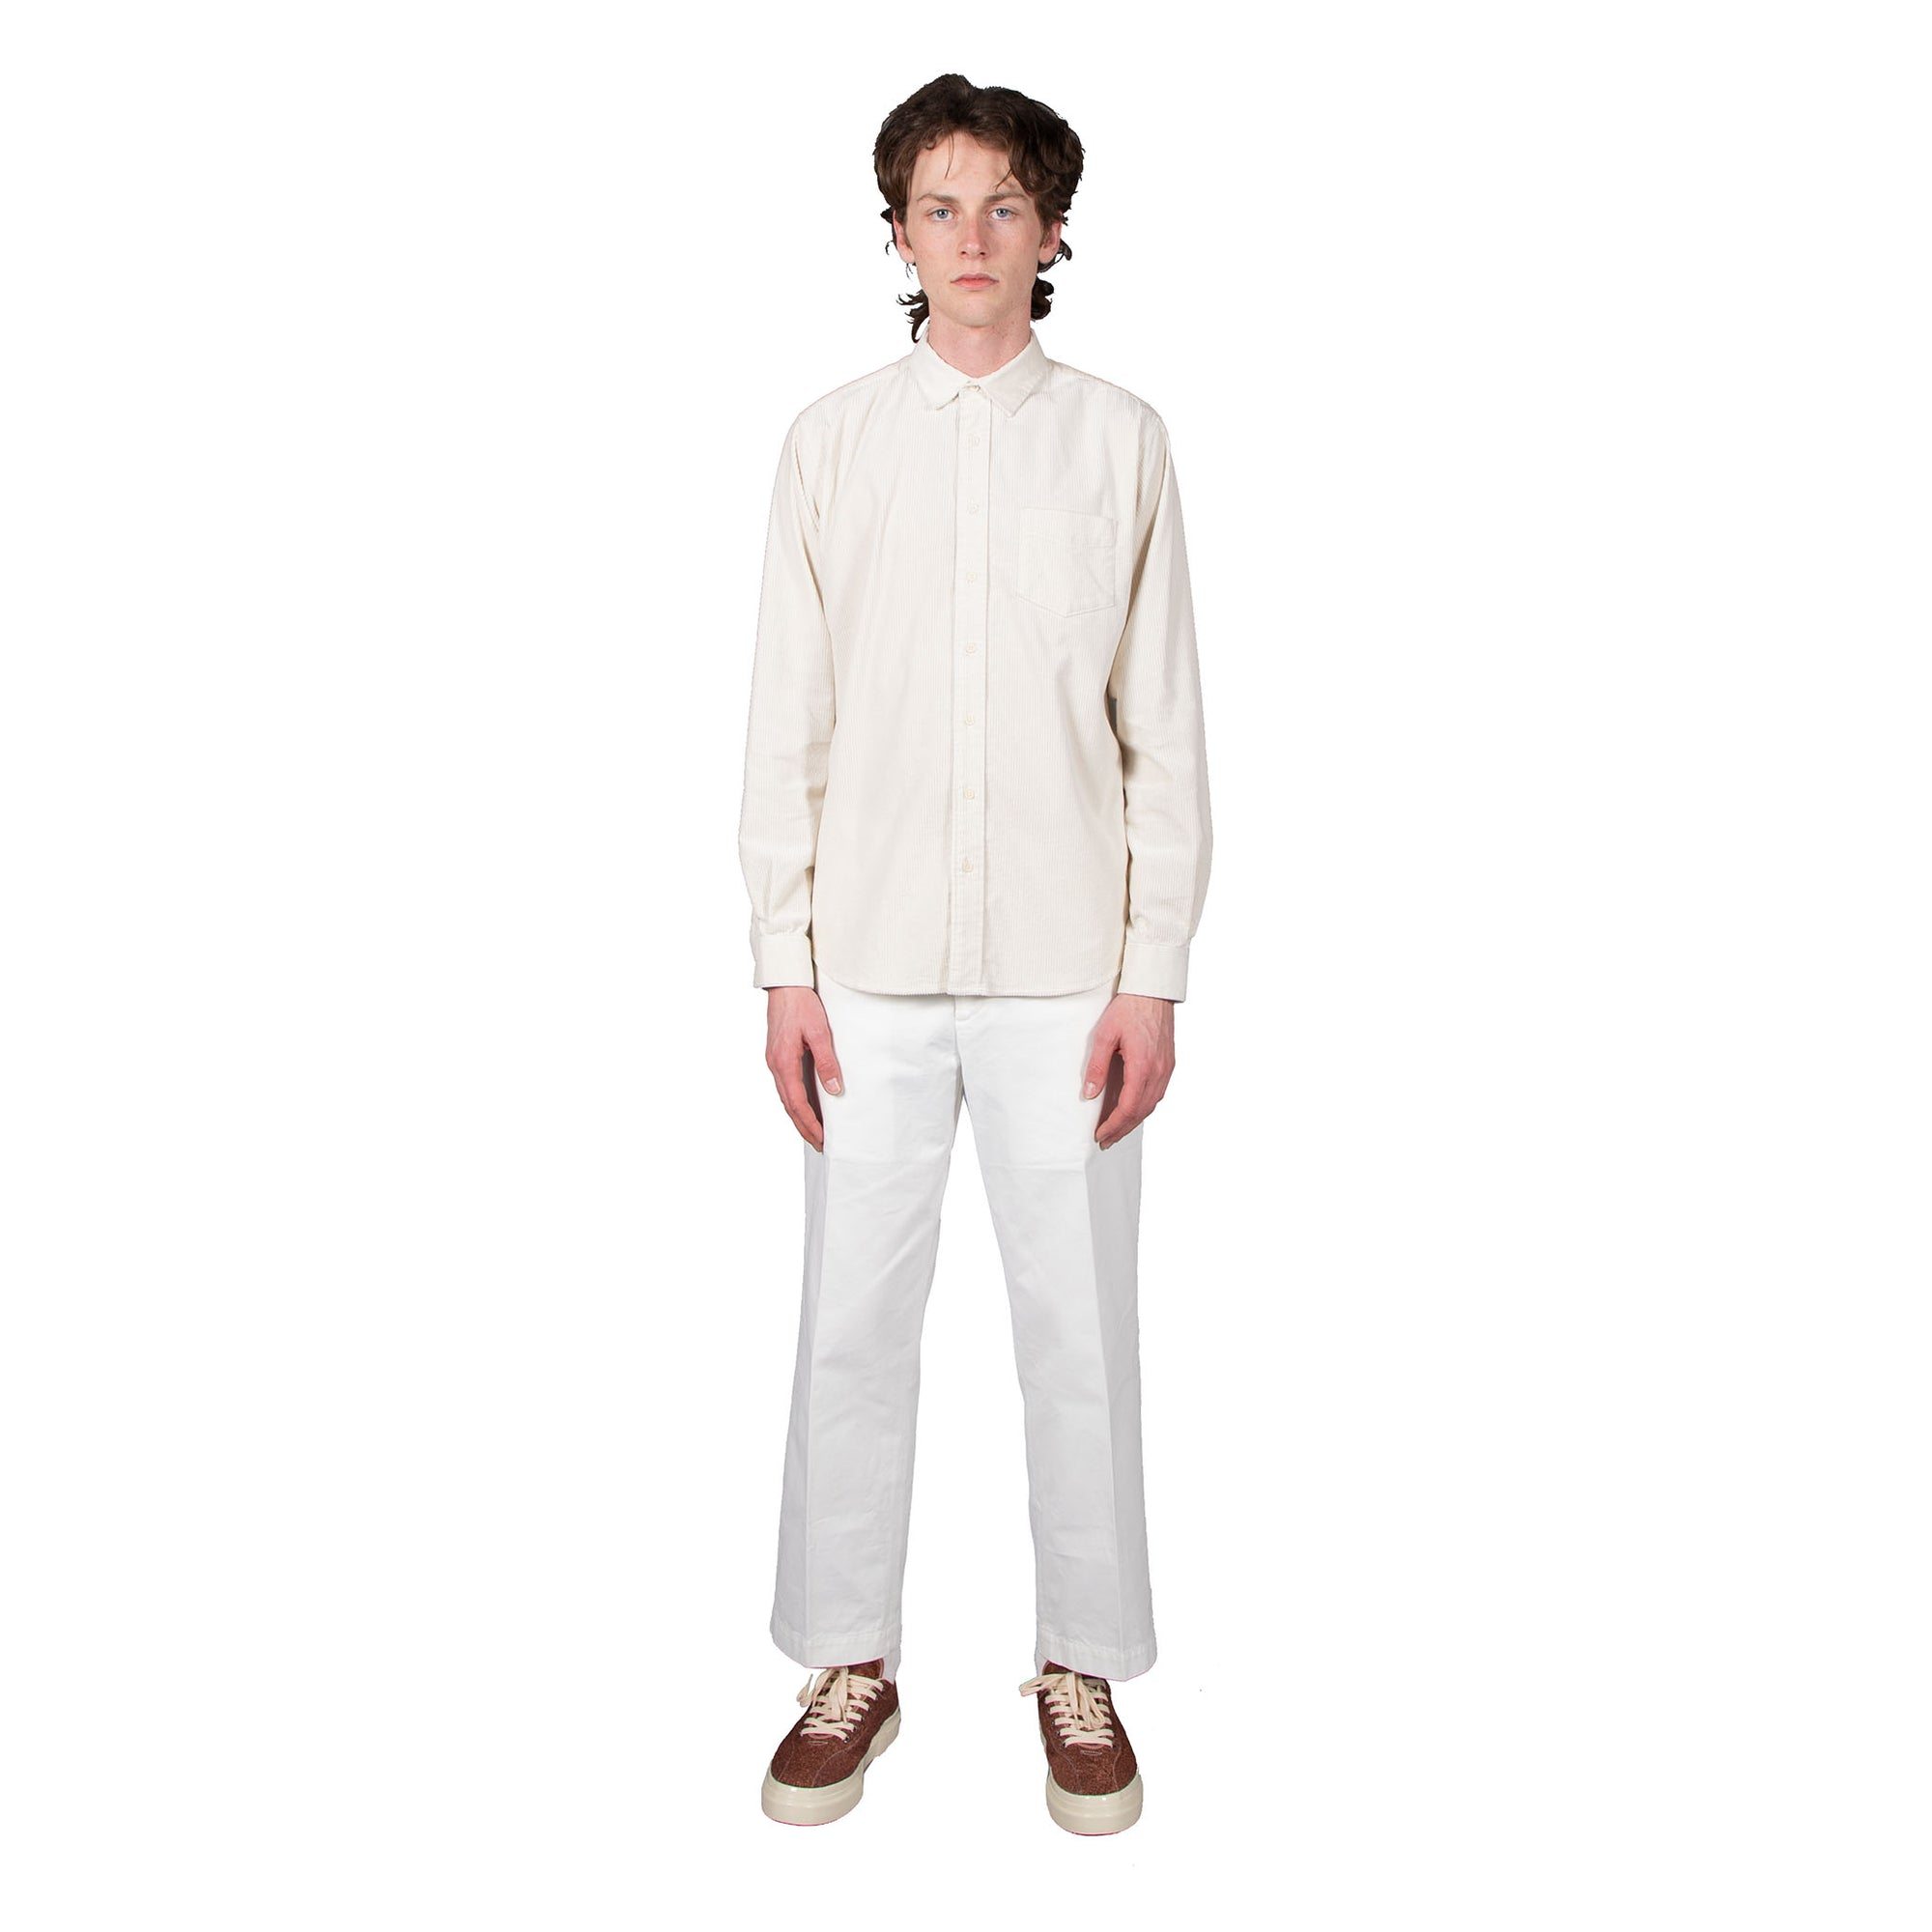 Shop Schnayderman's shirt online unbutton cord off white